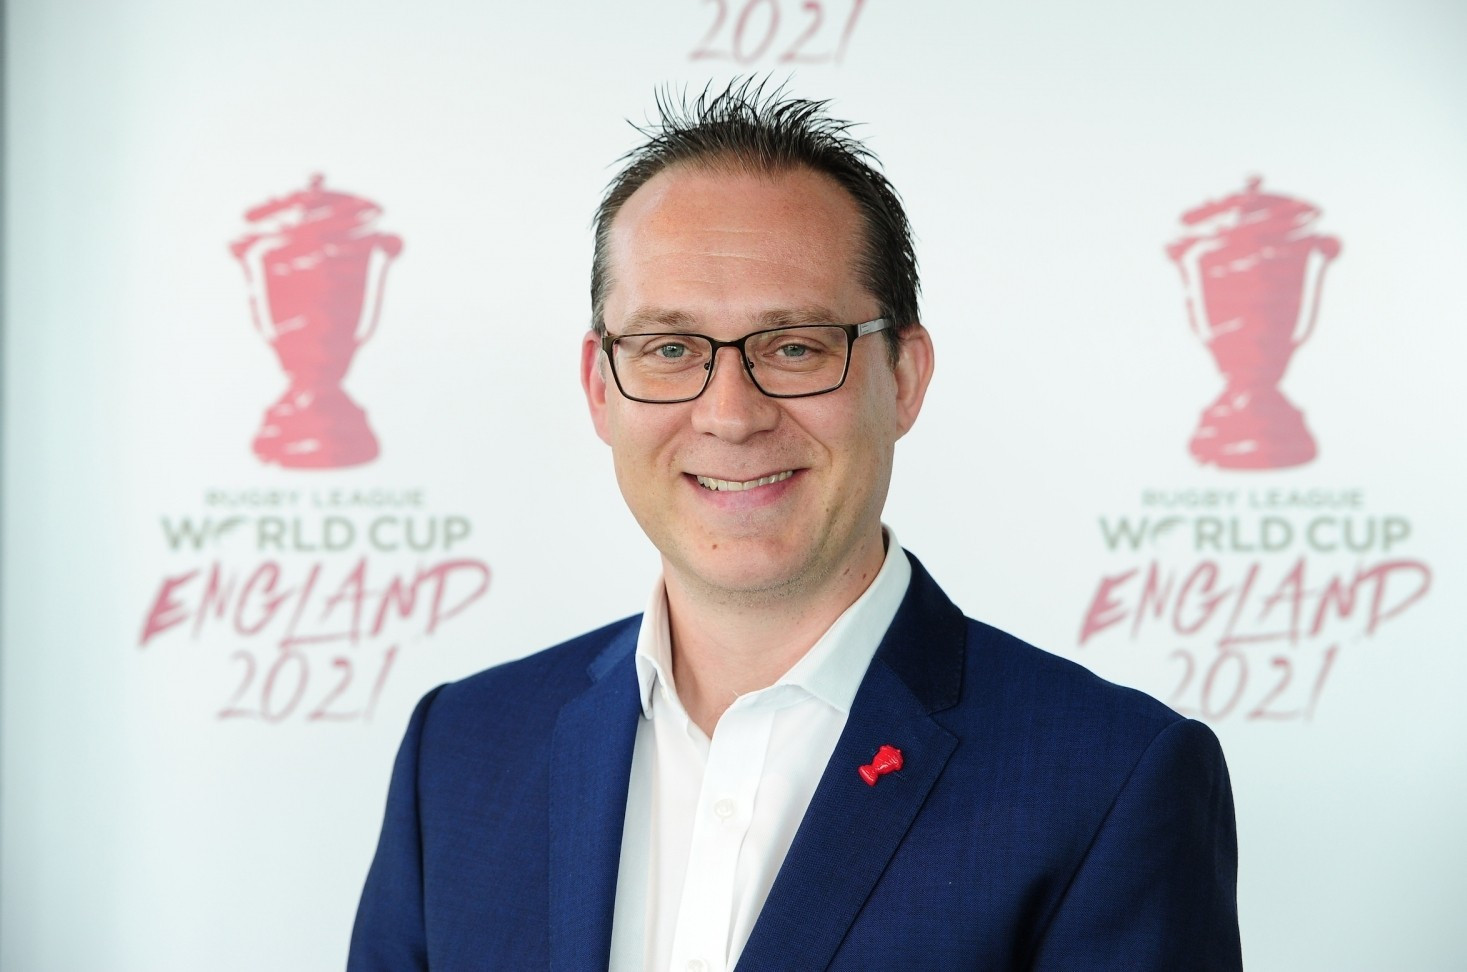 Jon Dutton has been appointed chief executive of the 2021 Rugby League World Cup ©RFL